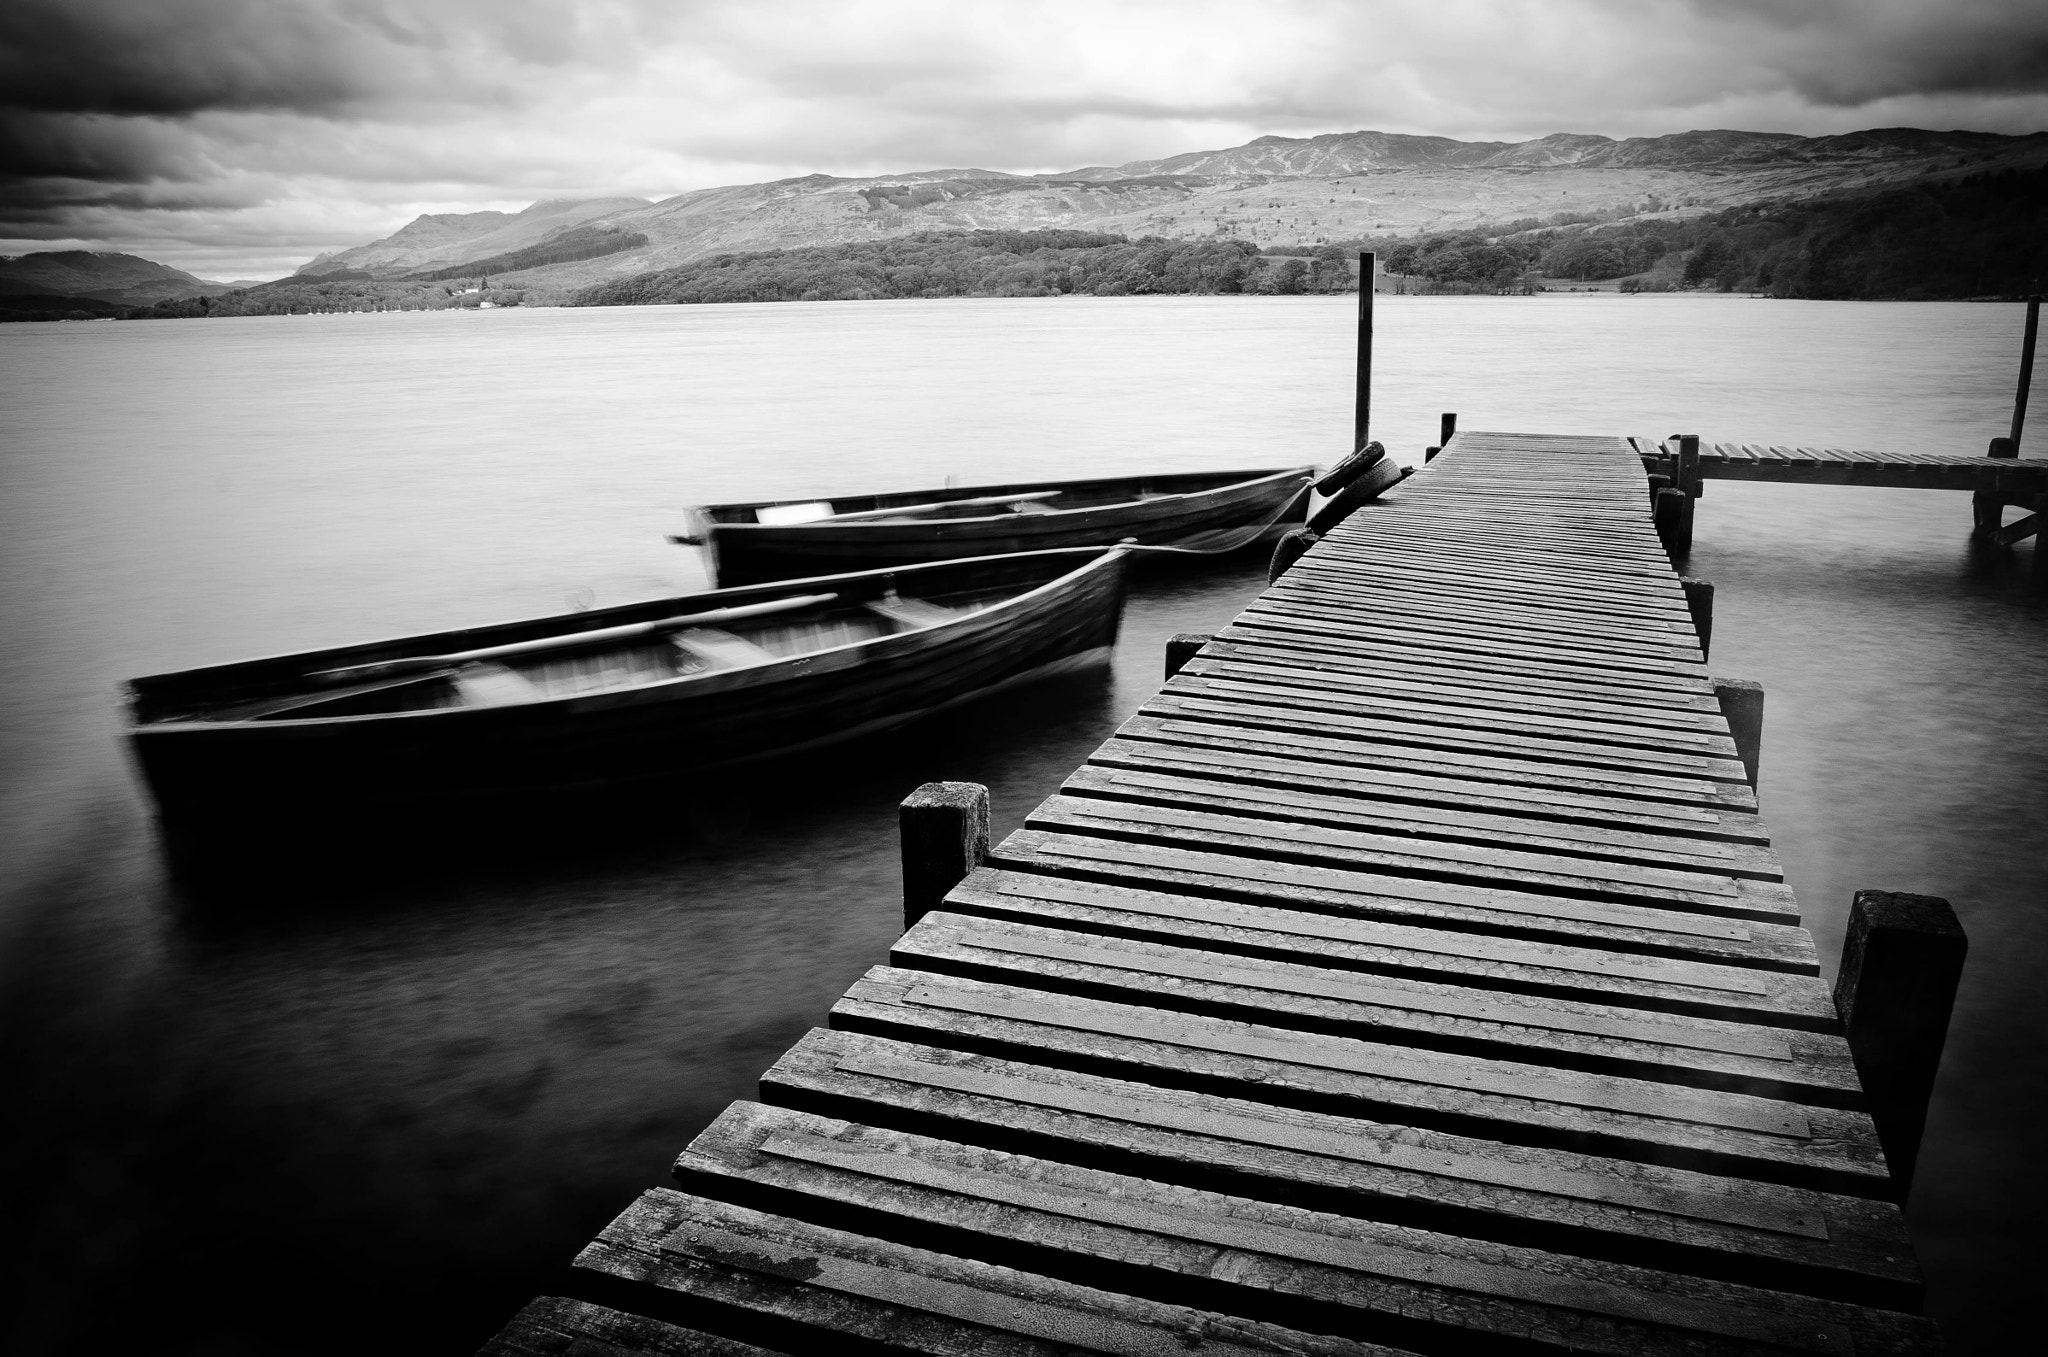 Photograph Loch Lomond IV by James Barlow on 500px